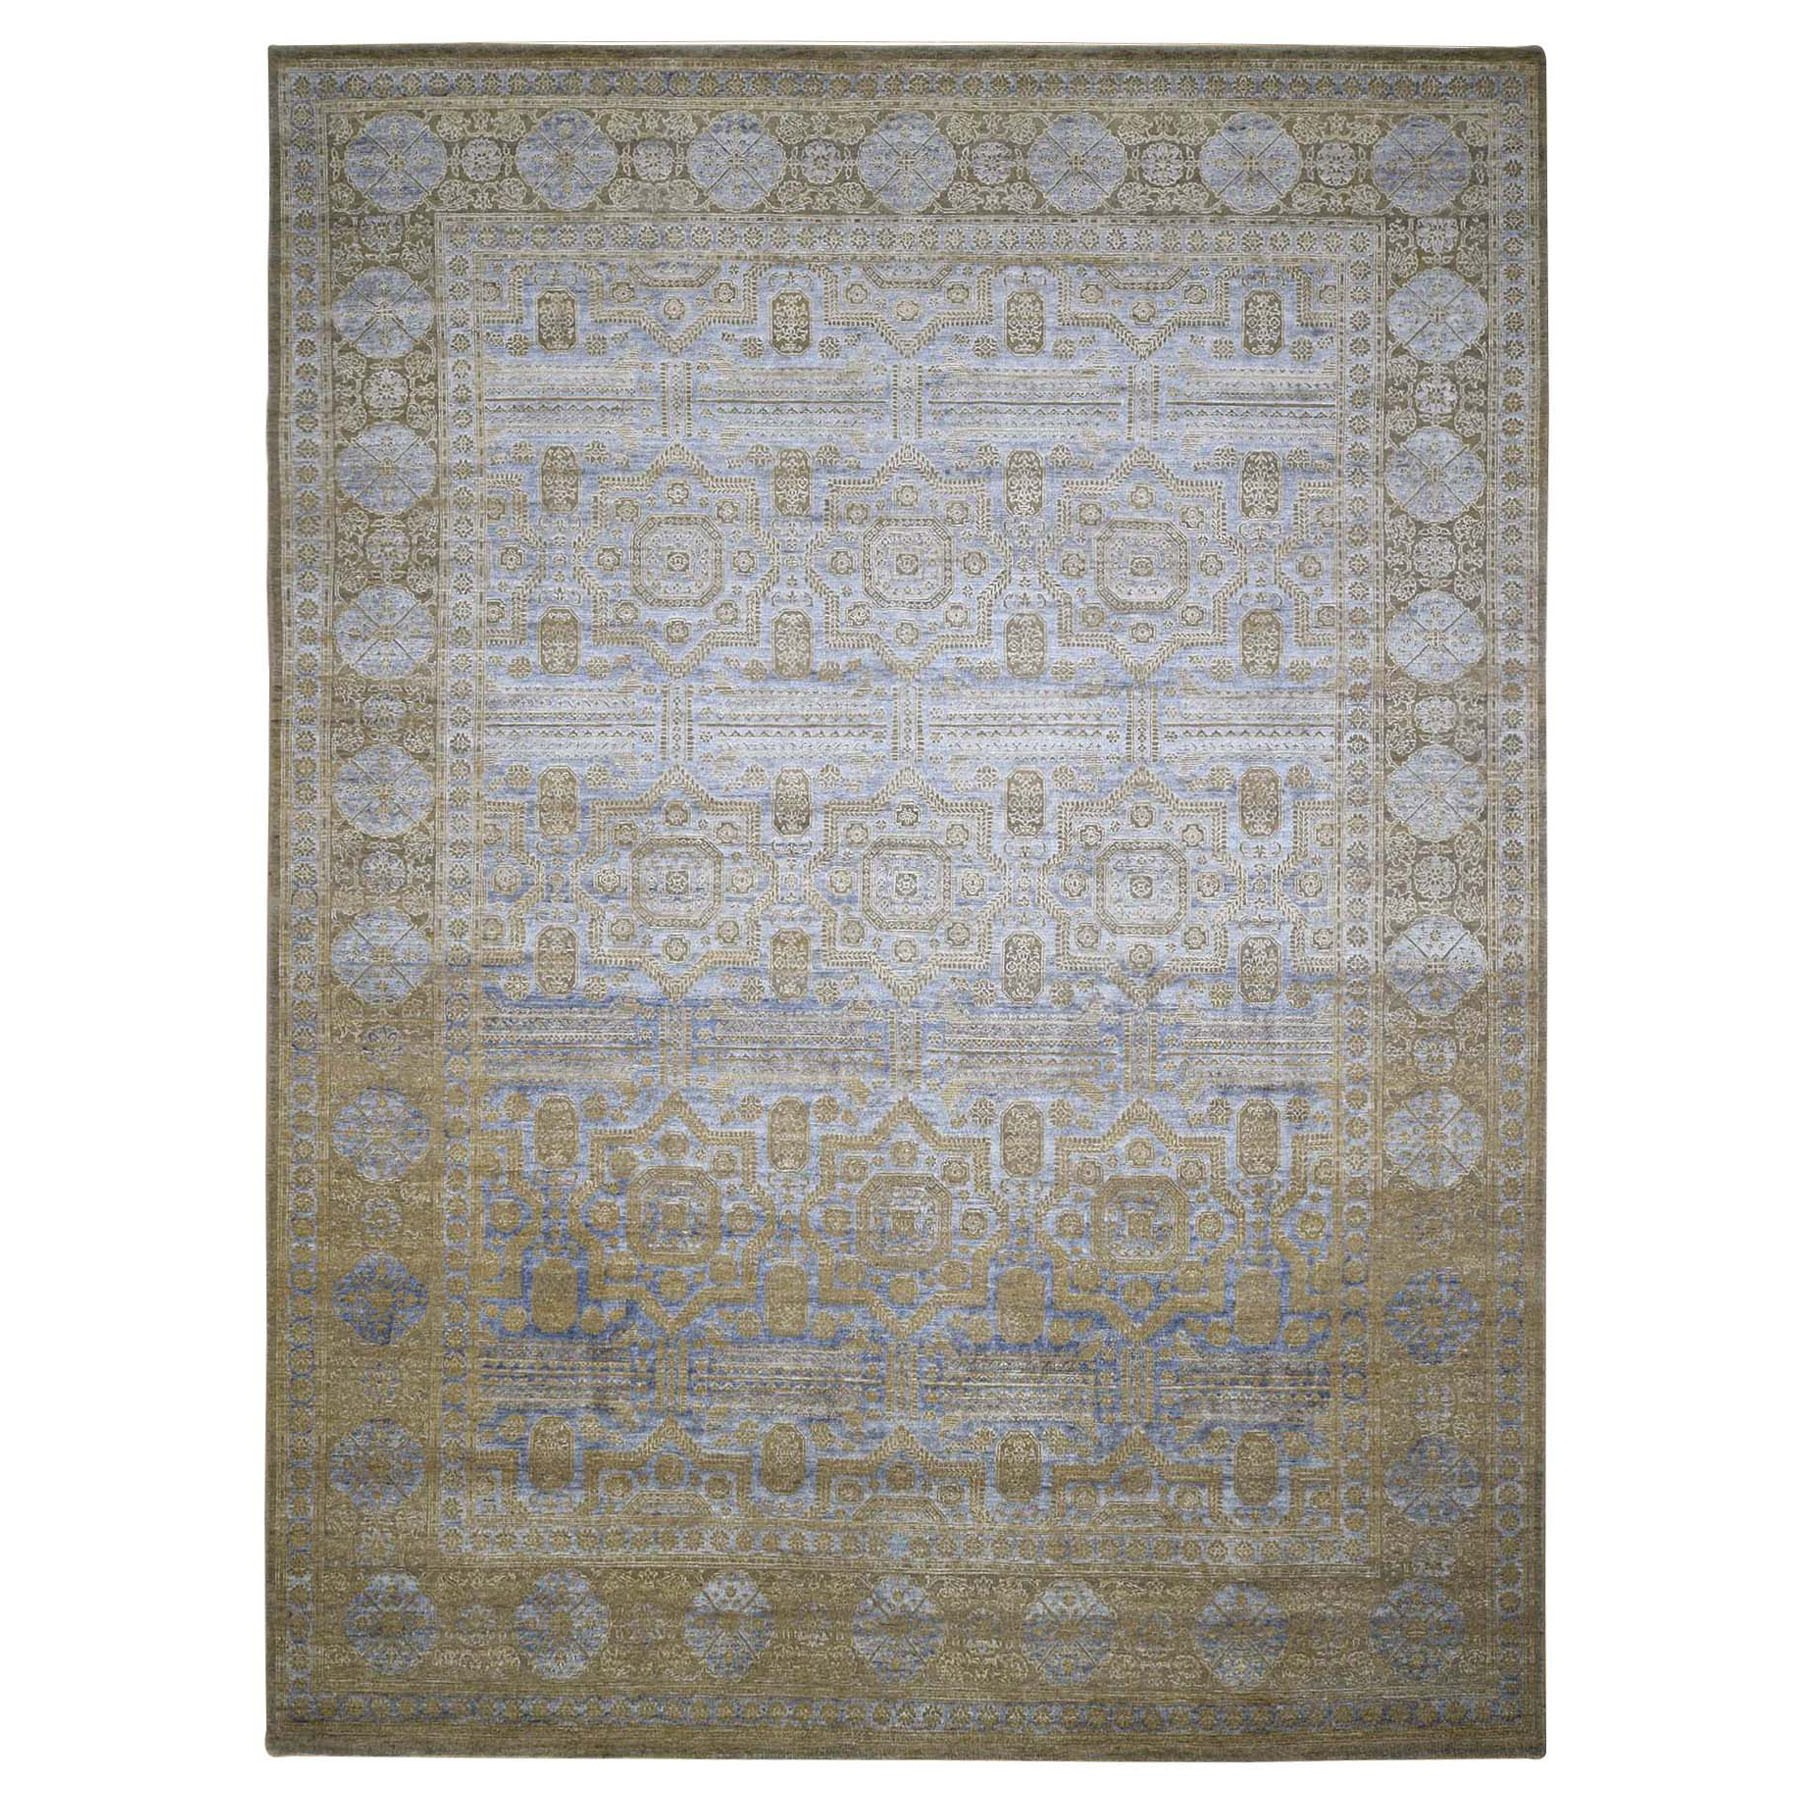 "9'1""x12' Mamluk Design Silk With Textured Wool Hand Knotted Oriental Rug"